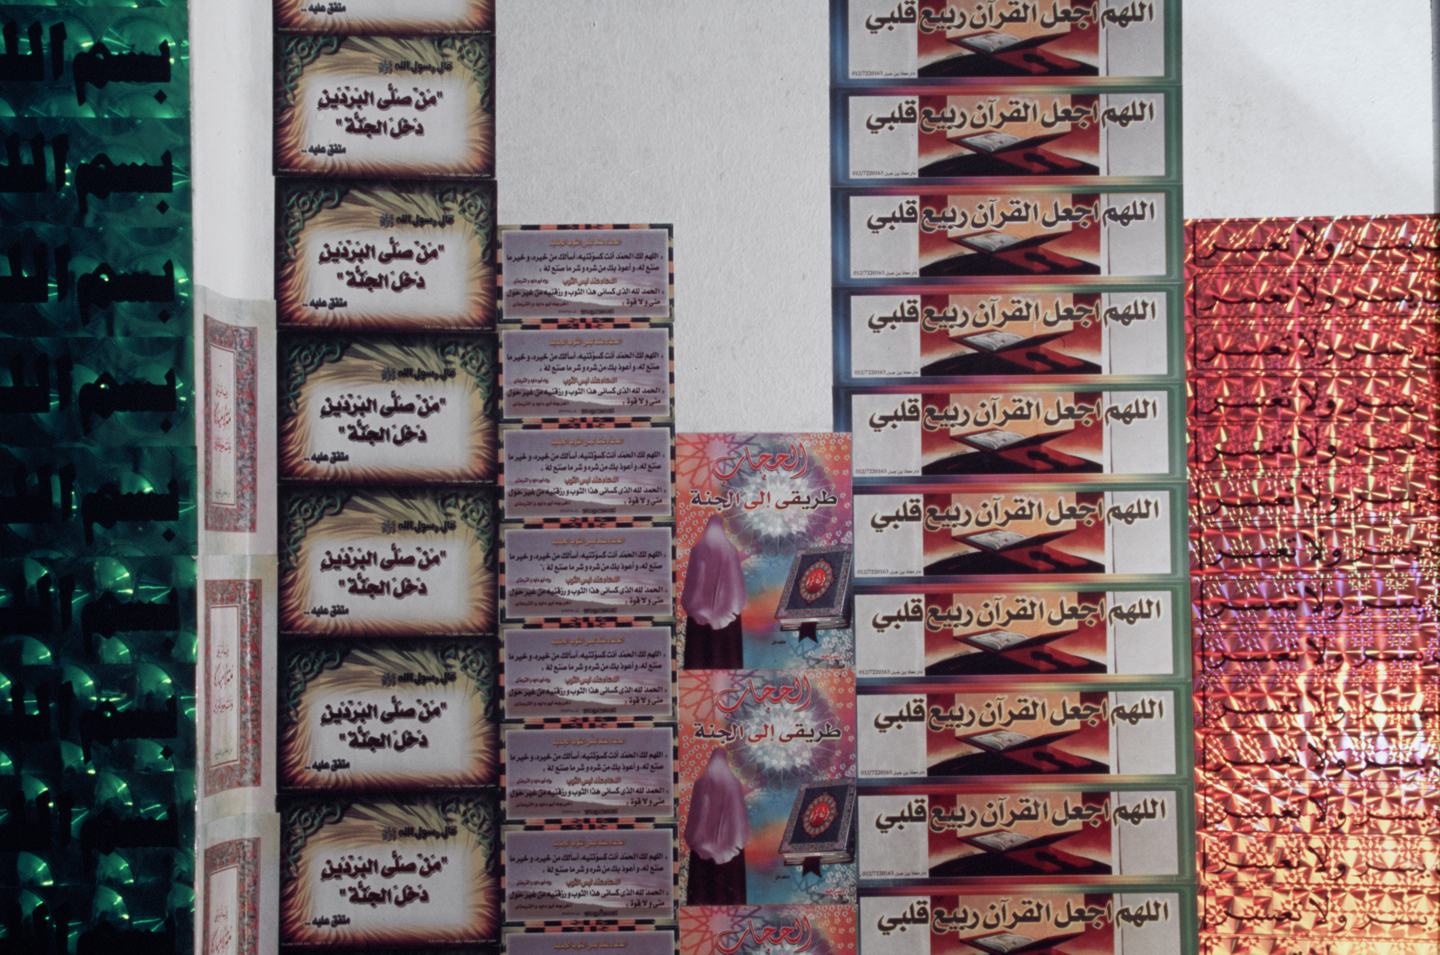 "Secure, In a Furnished Flat in Cairo, 2004, site-specific installation. Installation view.          Normal     0                     false     false     false         EN-US     JA     X-NONE                                                                                                                                                                                                                                                                                                                                                                                                                                                                                                                                                                                                                                                                        /* Style Definitions */ table.MsoNormalTable 	{mso-style-name:""Table Normal""; 	mso-tstyle-rowband-size:0; 	mso-tstyle-colband-size:0; 	mso-style-noshow:yes; 	mso-style-priority:99; 	mso-style-parent:""""; 	mso-padding-alt:0in 5.4pt 0in 5.4pt; 	mso-para-margin:0in; 	mso-para-margin-bottom:.0001pt; 	mso-pagination:widow-orphan; 	font-size:12.0pt; 	font-family:""Times New Roman""; 	mso-ascii-font-family:""Times New Roman""; 	mso-ascii-theme-font:minor-latin; 	mso-hansi-font-family:""Times New Roman""; 	mso-hansi-theme-font:minor-latin; 	mso-bidi-font-family:""Times New Roman""; 	mso-bidi-theme-font:minor-bidi; 	mso-ansi-language:EN-US; 	mso-fareast-language:JA;}"